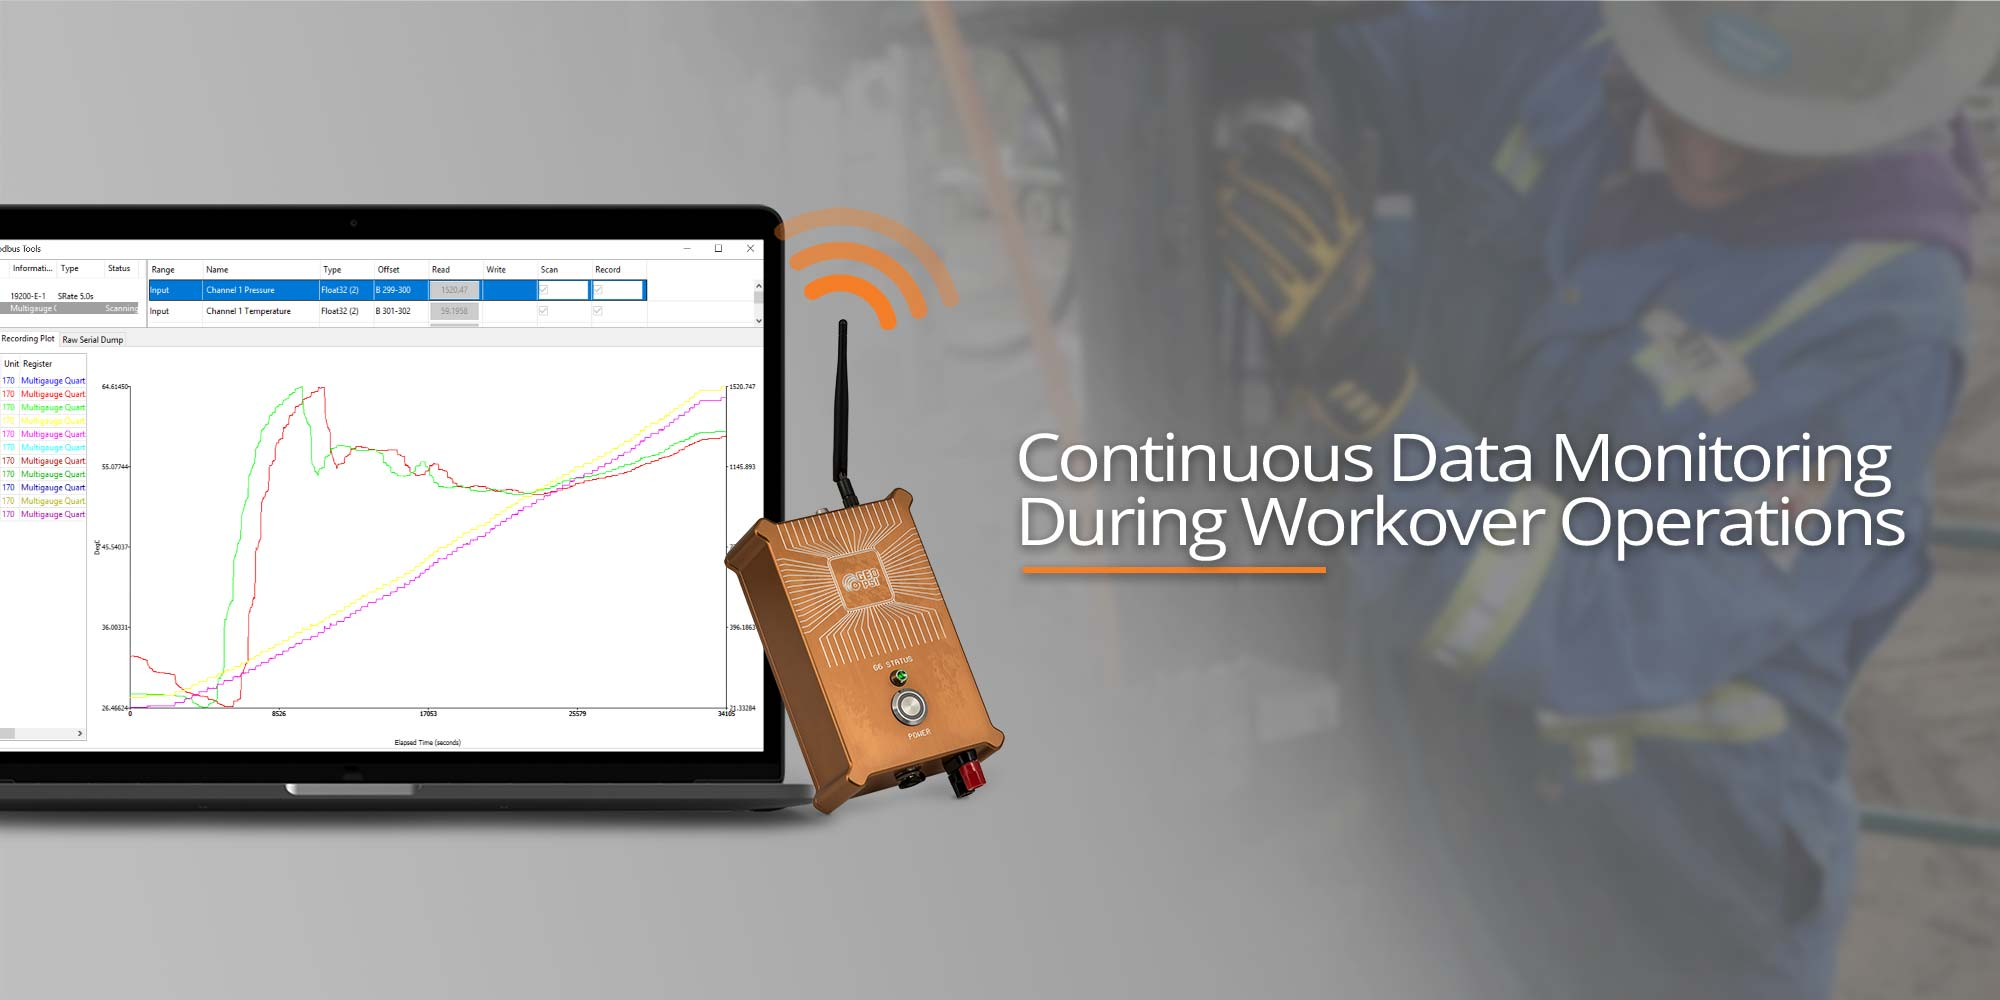 Continuous Data Monitoring During Workover Operations